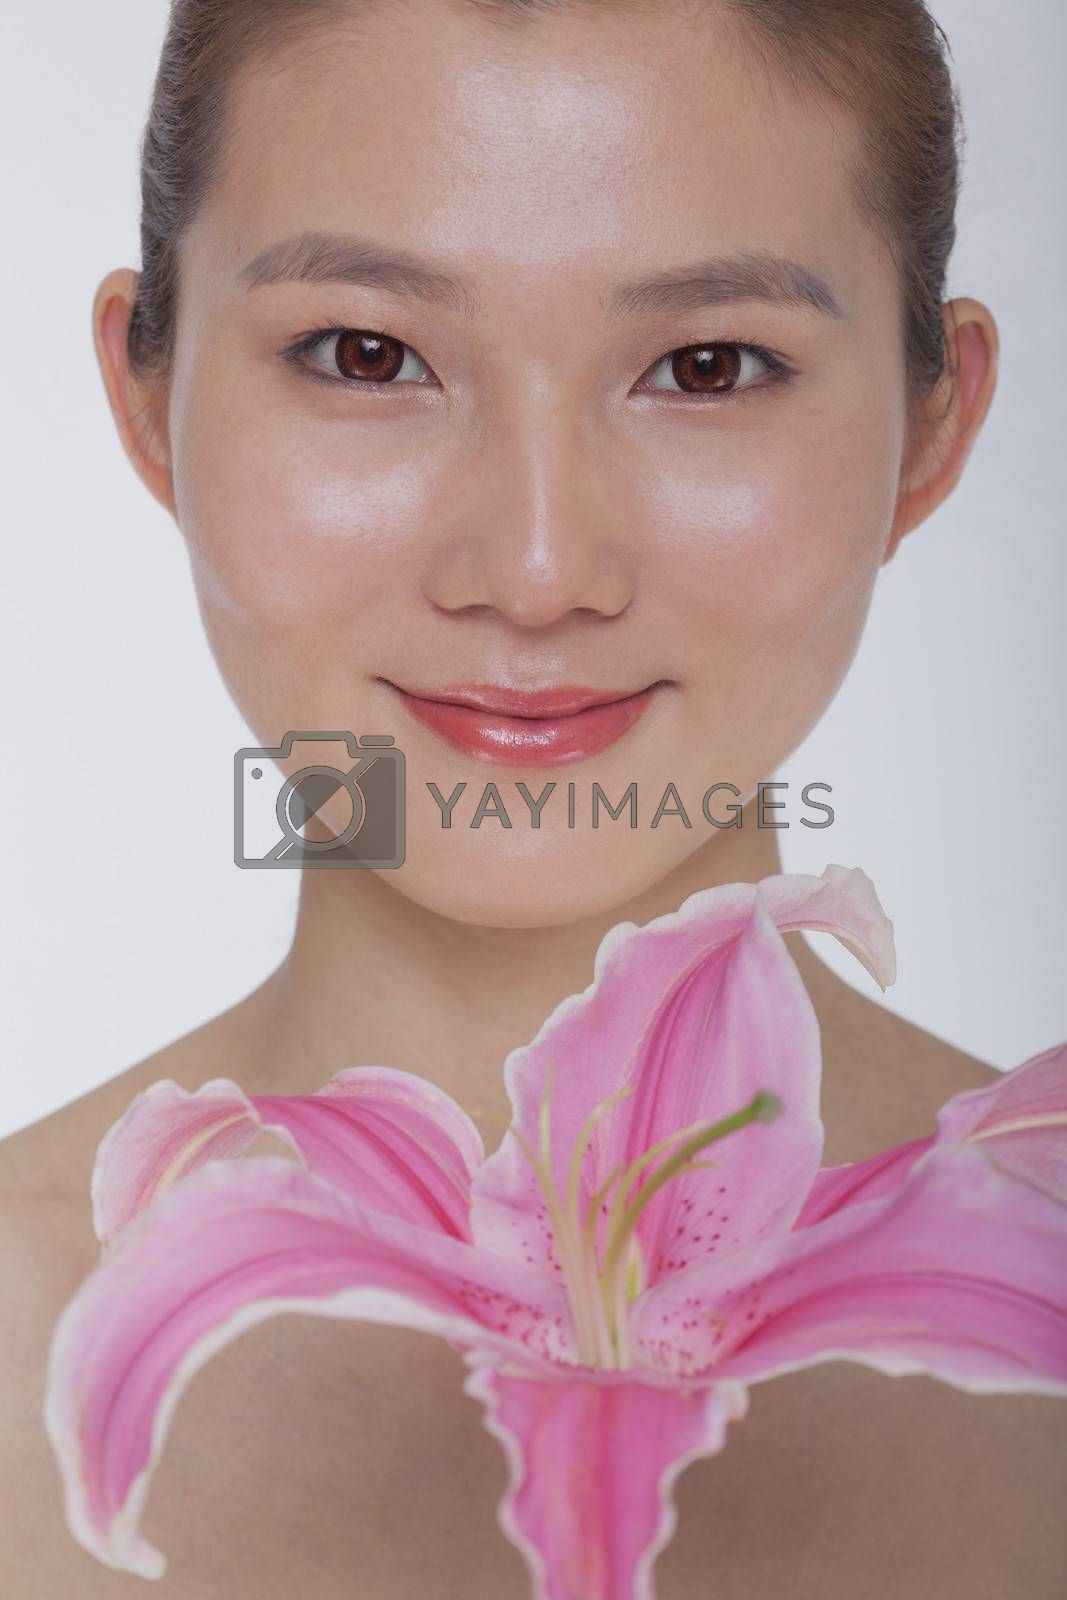 Portrait of young tranquil woman looking at camera with a large pink flower, studio shot